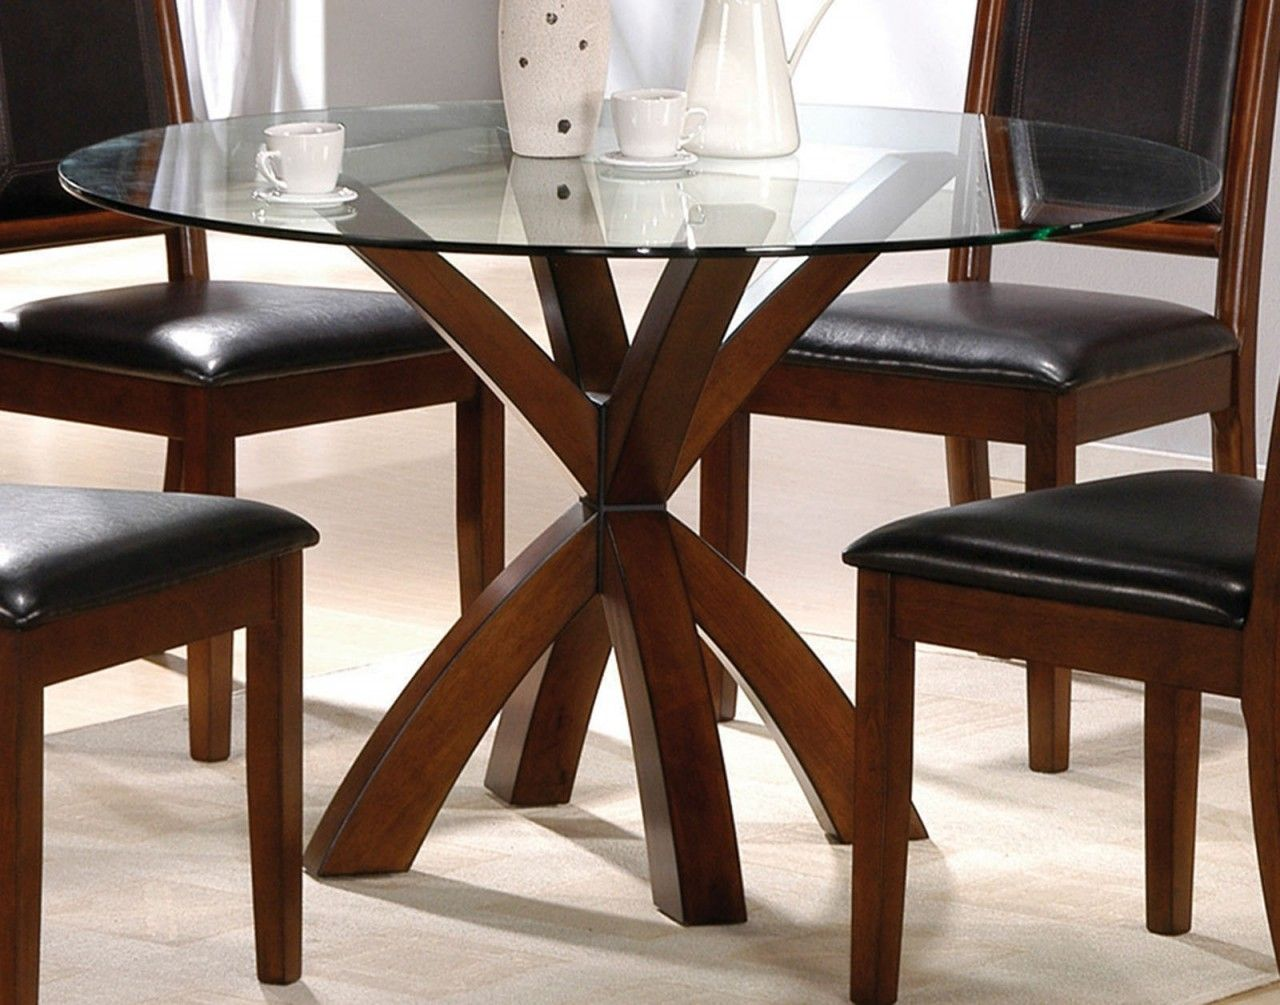 Statue Of Dining Table Bases For Glass Tops  Perfect Dining Room Captivating Replacement Seats For Dining Room Chairs Design Inspiration